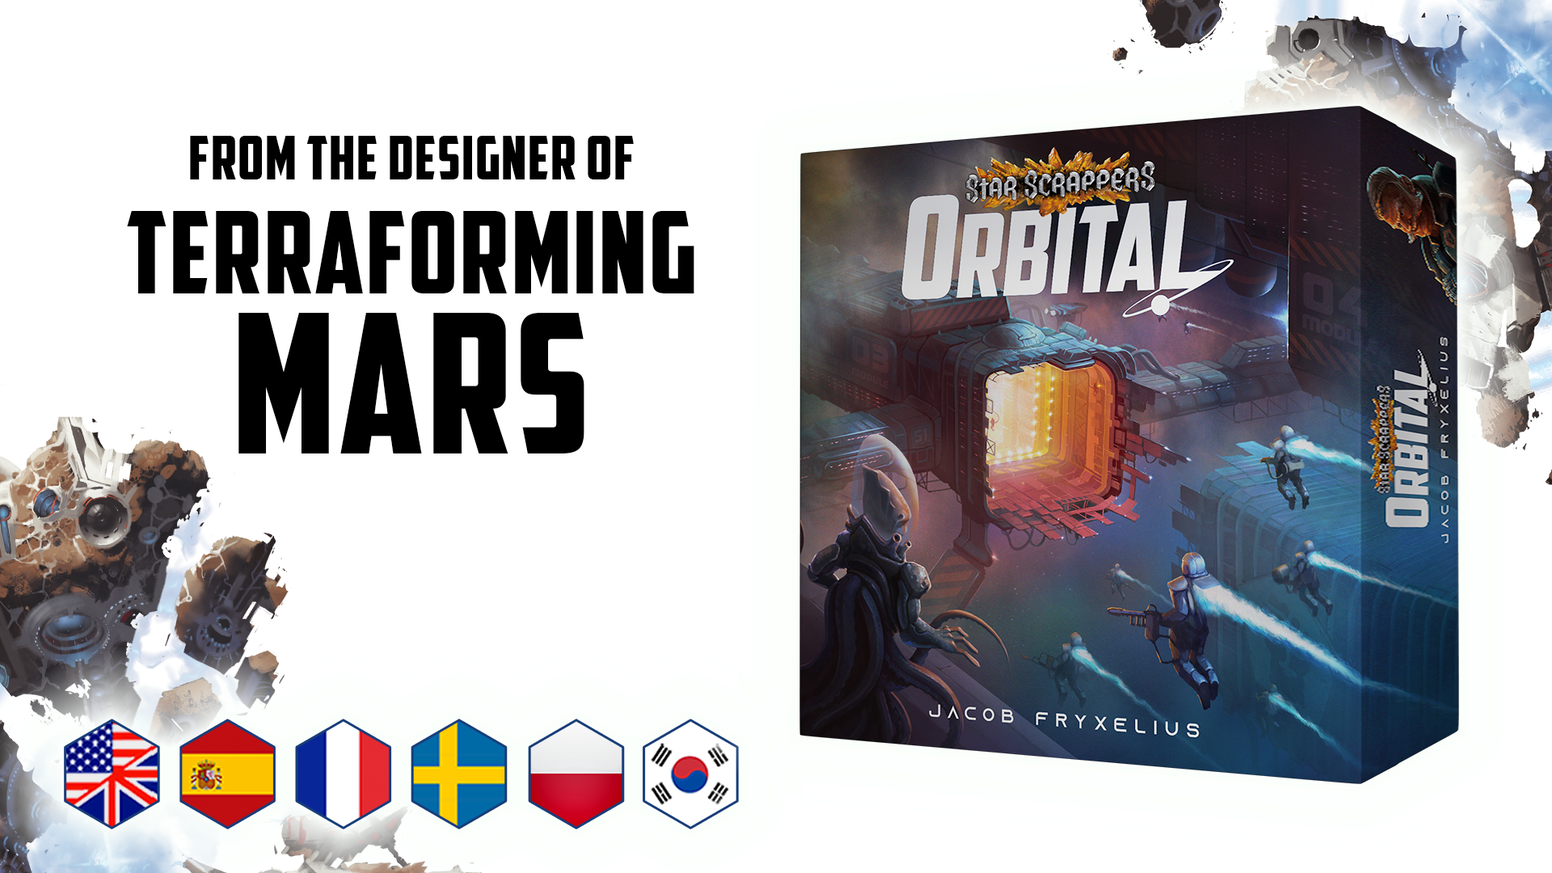 Become a space station commander! Compete against rival corporations in a card game for 1-5 players by designer of Terraforming Mars.